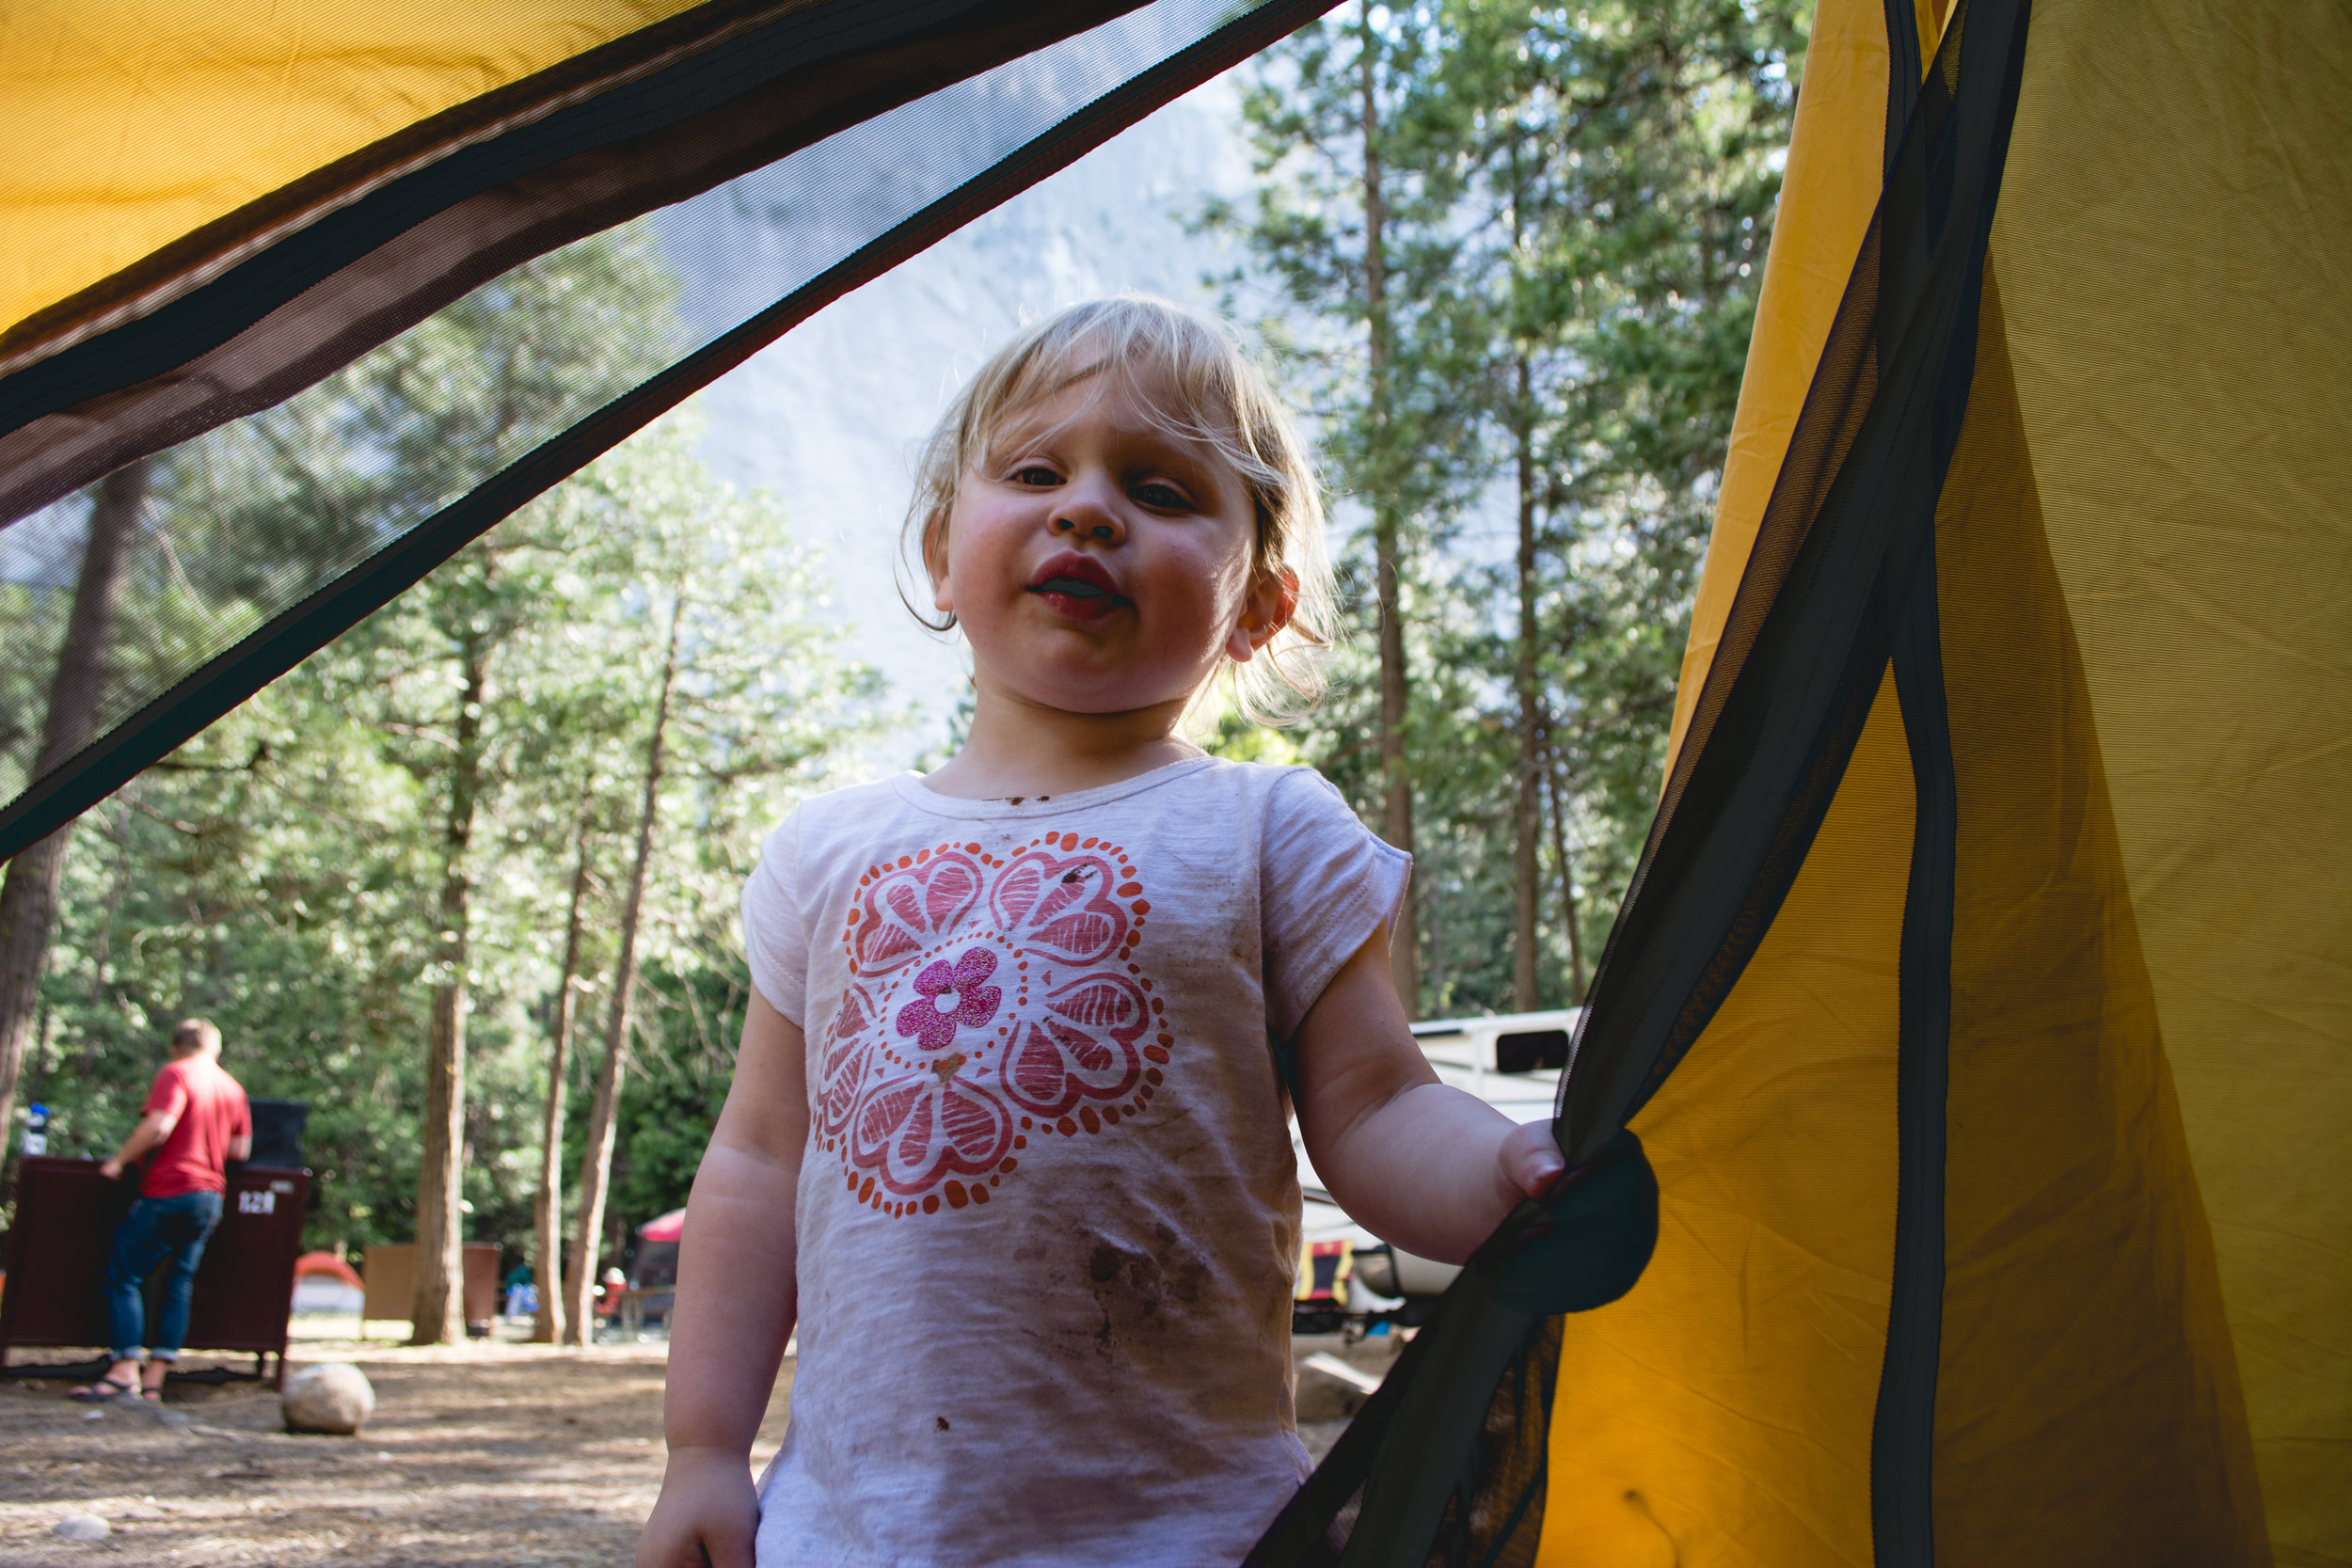 Kids get dirty camping. But, that is half the fun!